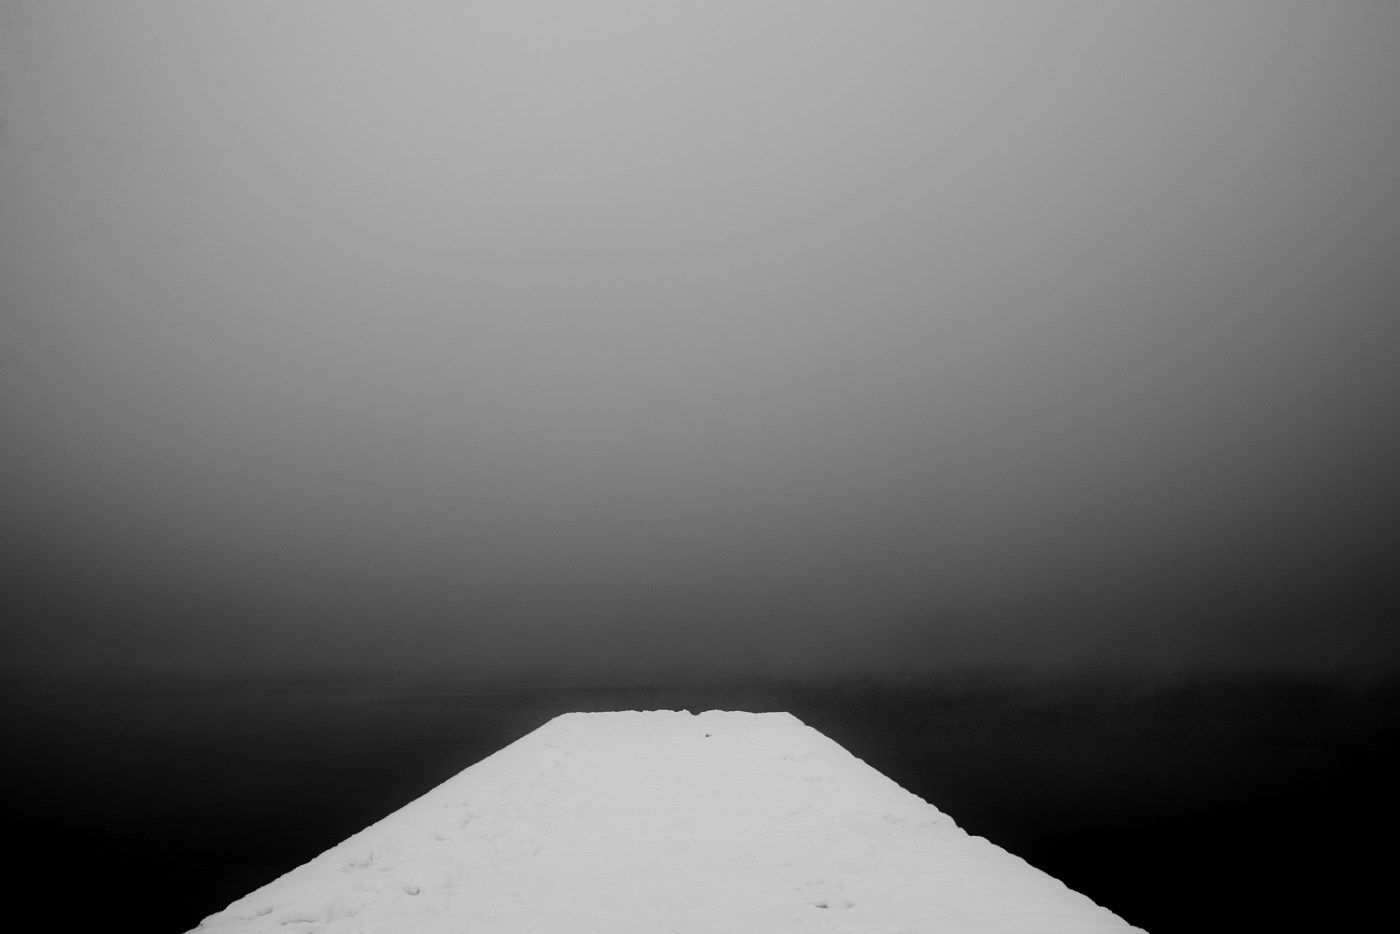 """Fogged up"" - a photo by Eirik Jeistad"